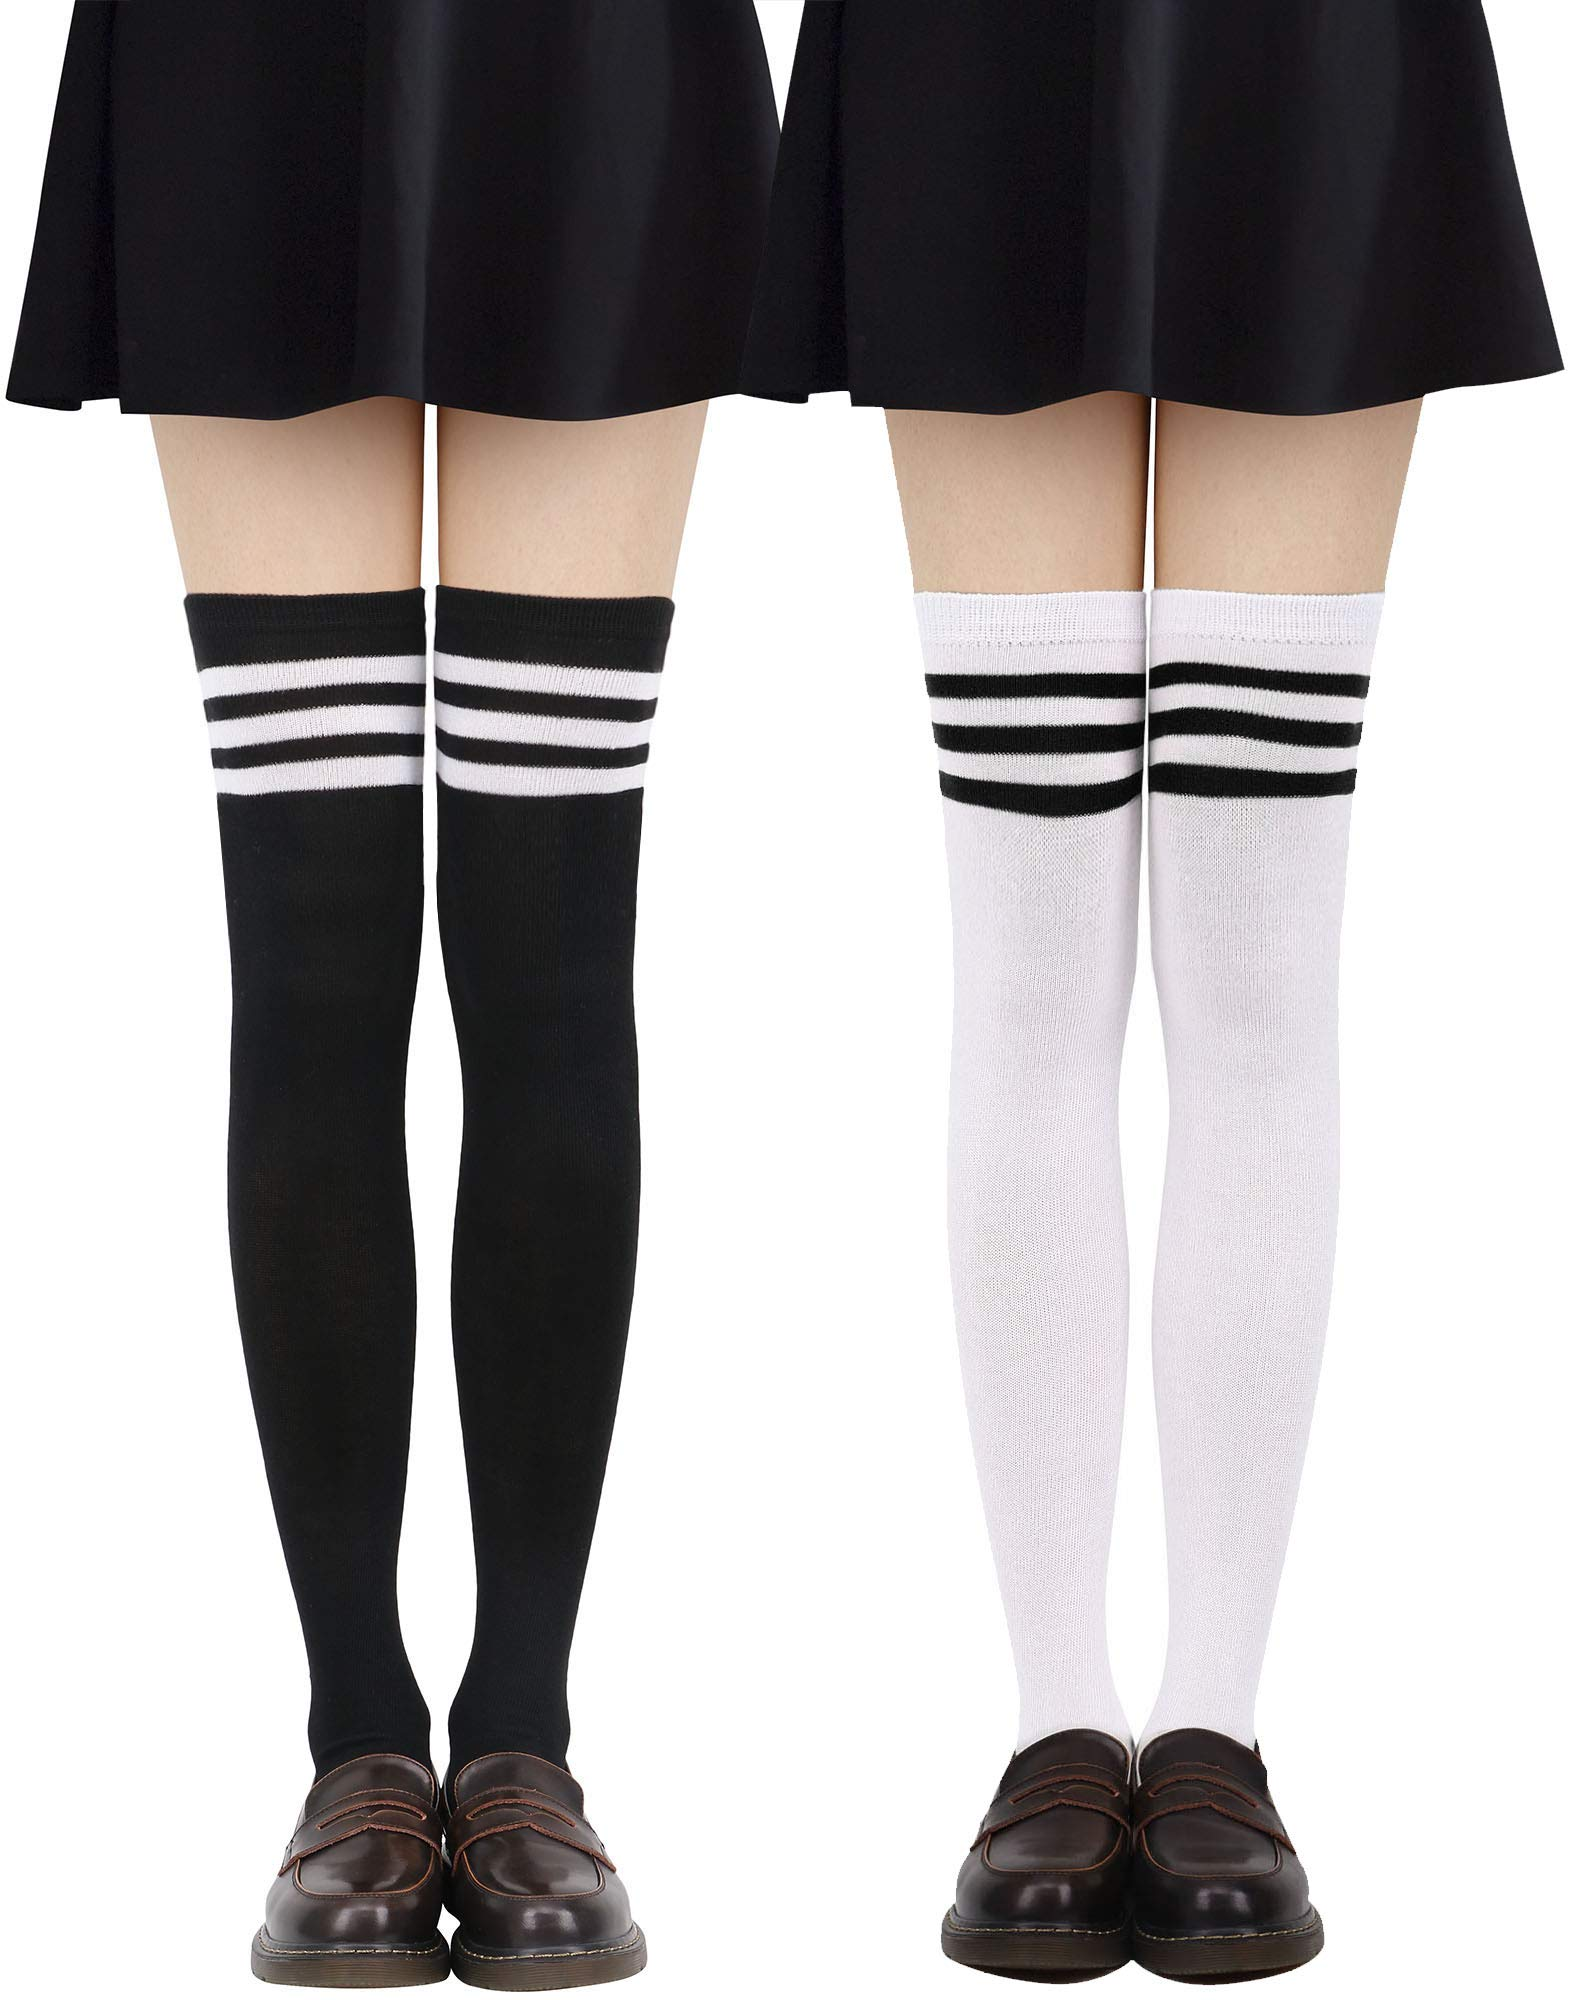 Jasmine Tube Socks Women's Retro Striped Long Knee High Socks Thigh High Stockings